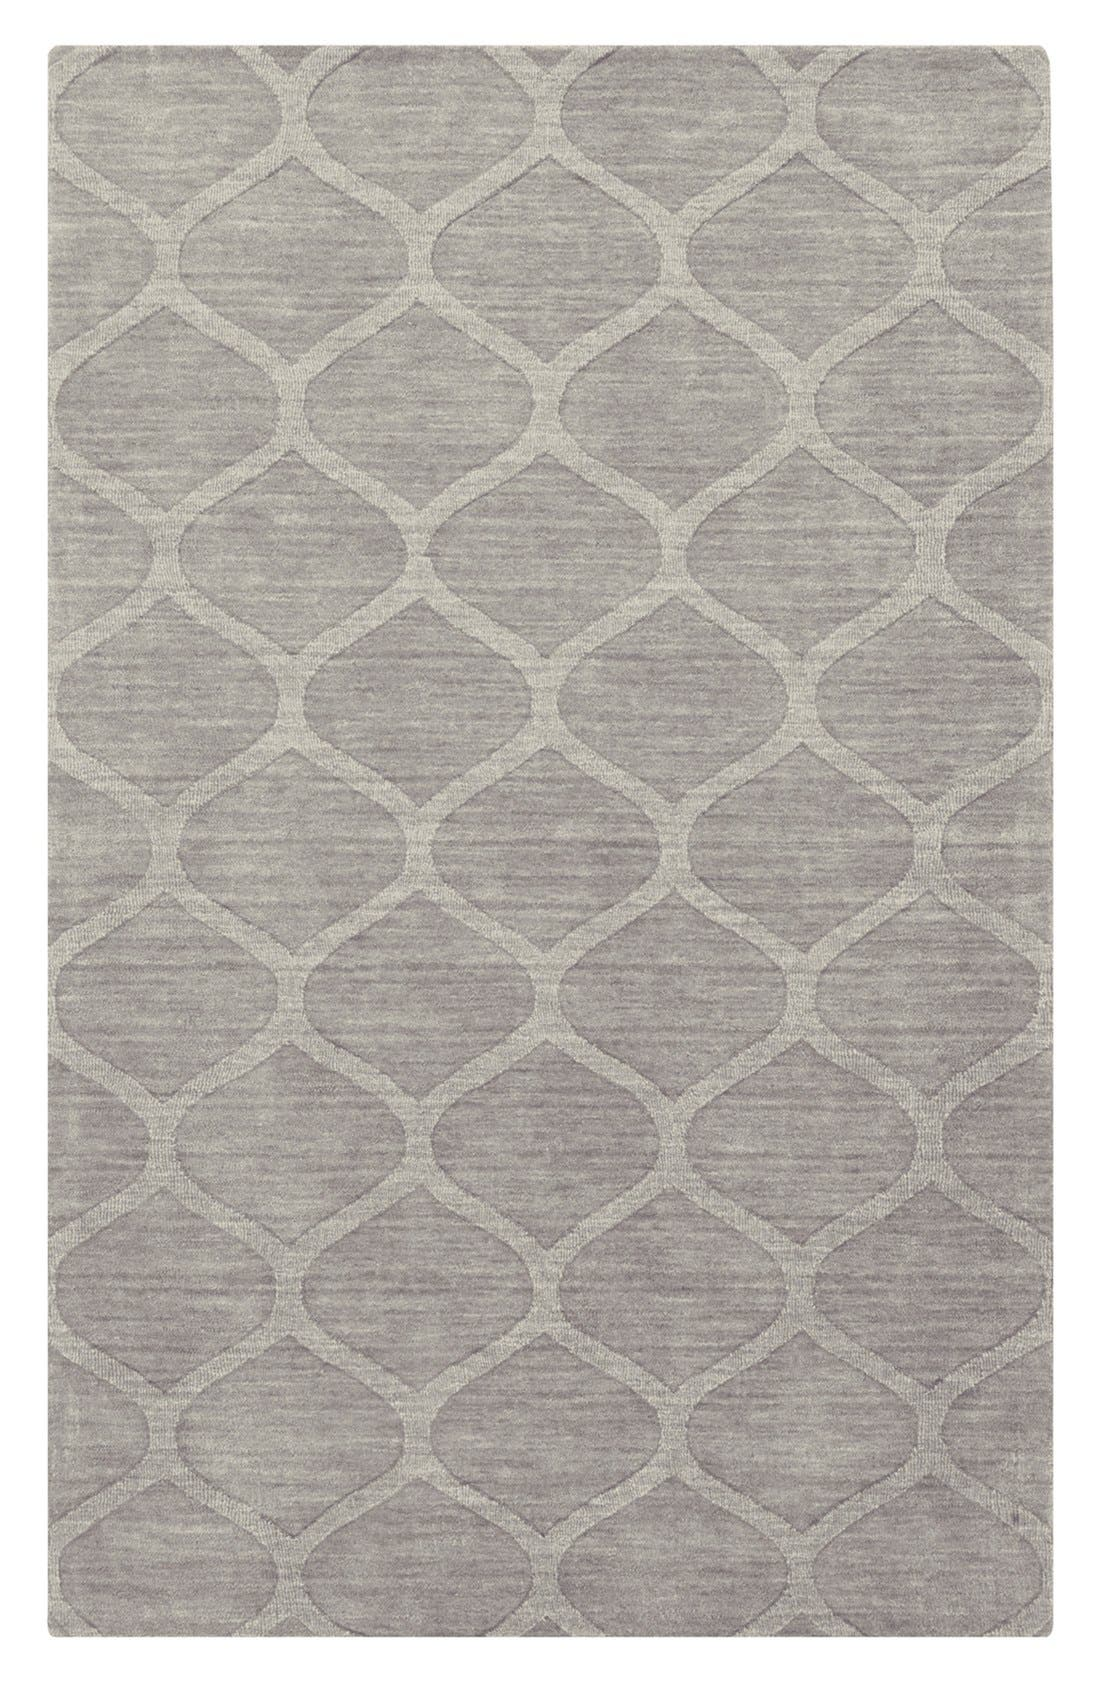 SURYA HOME 'Mystique' Hand Loomed Wool Rug, Main, color, 020